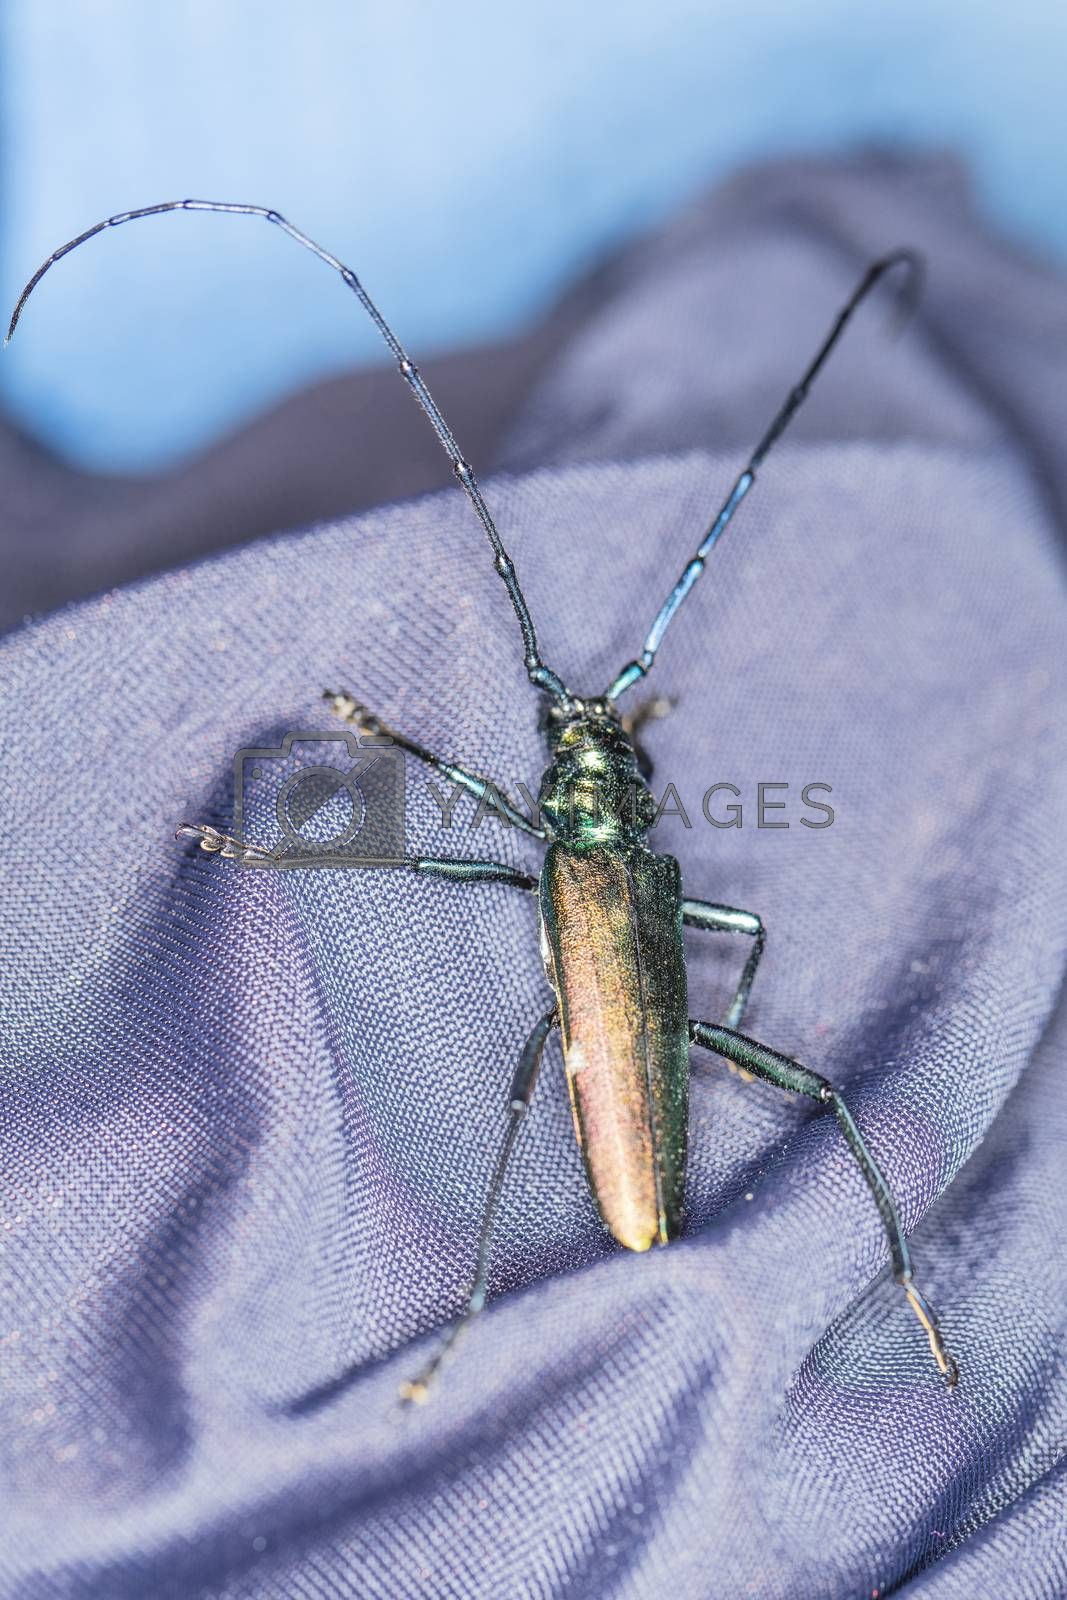 Cerambycidae, beetle in a beautiful color walks on the material